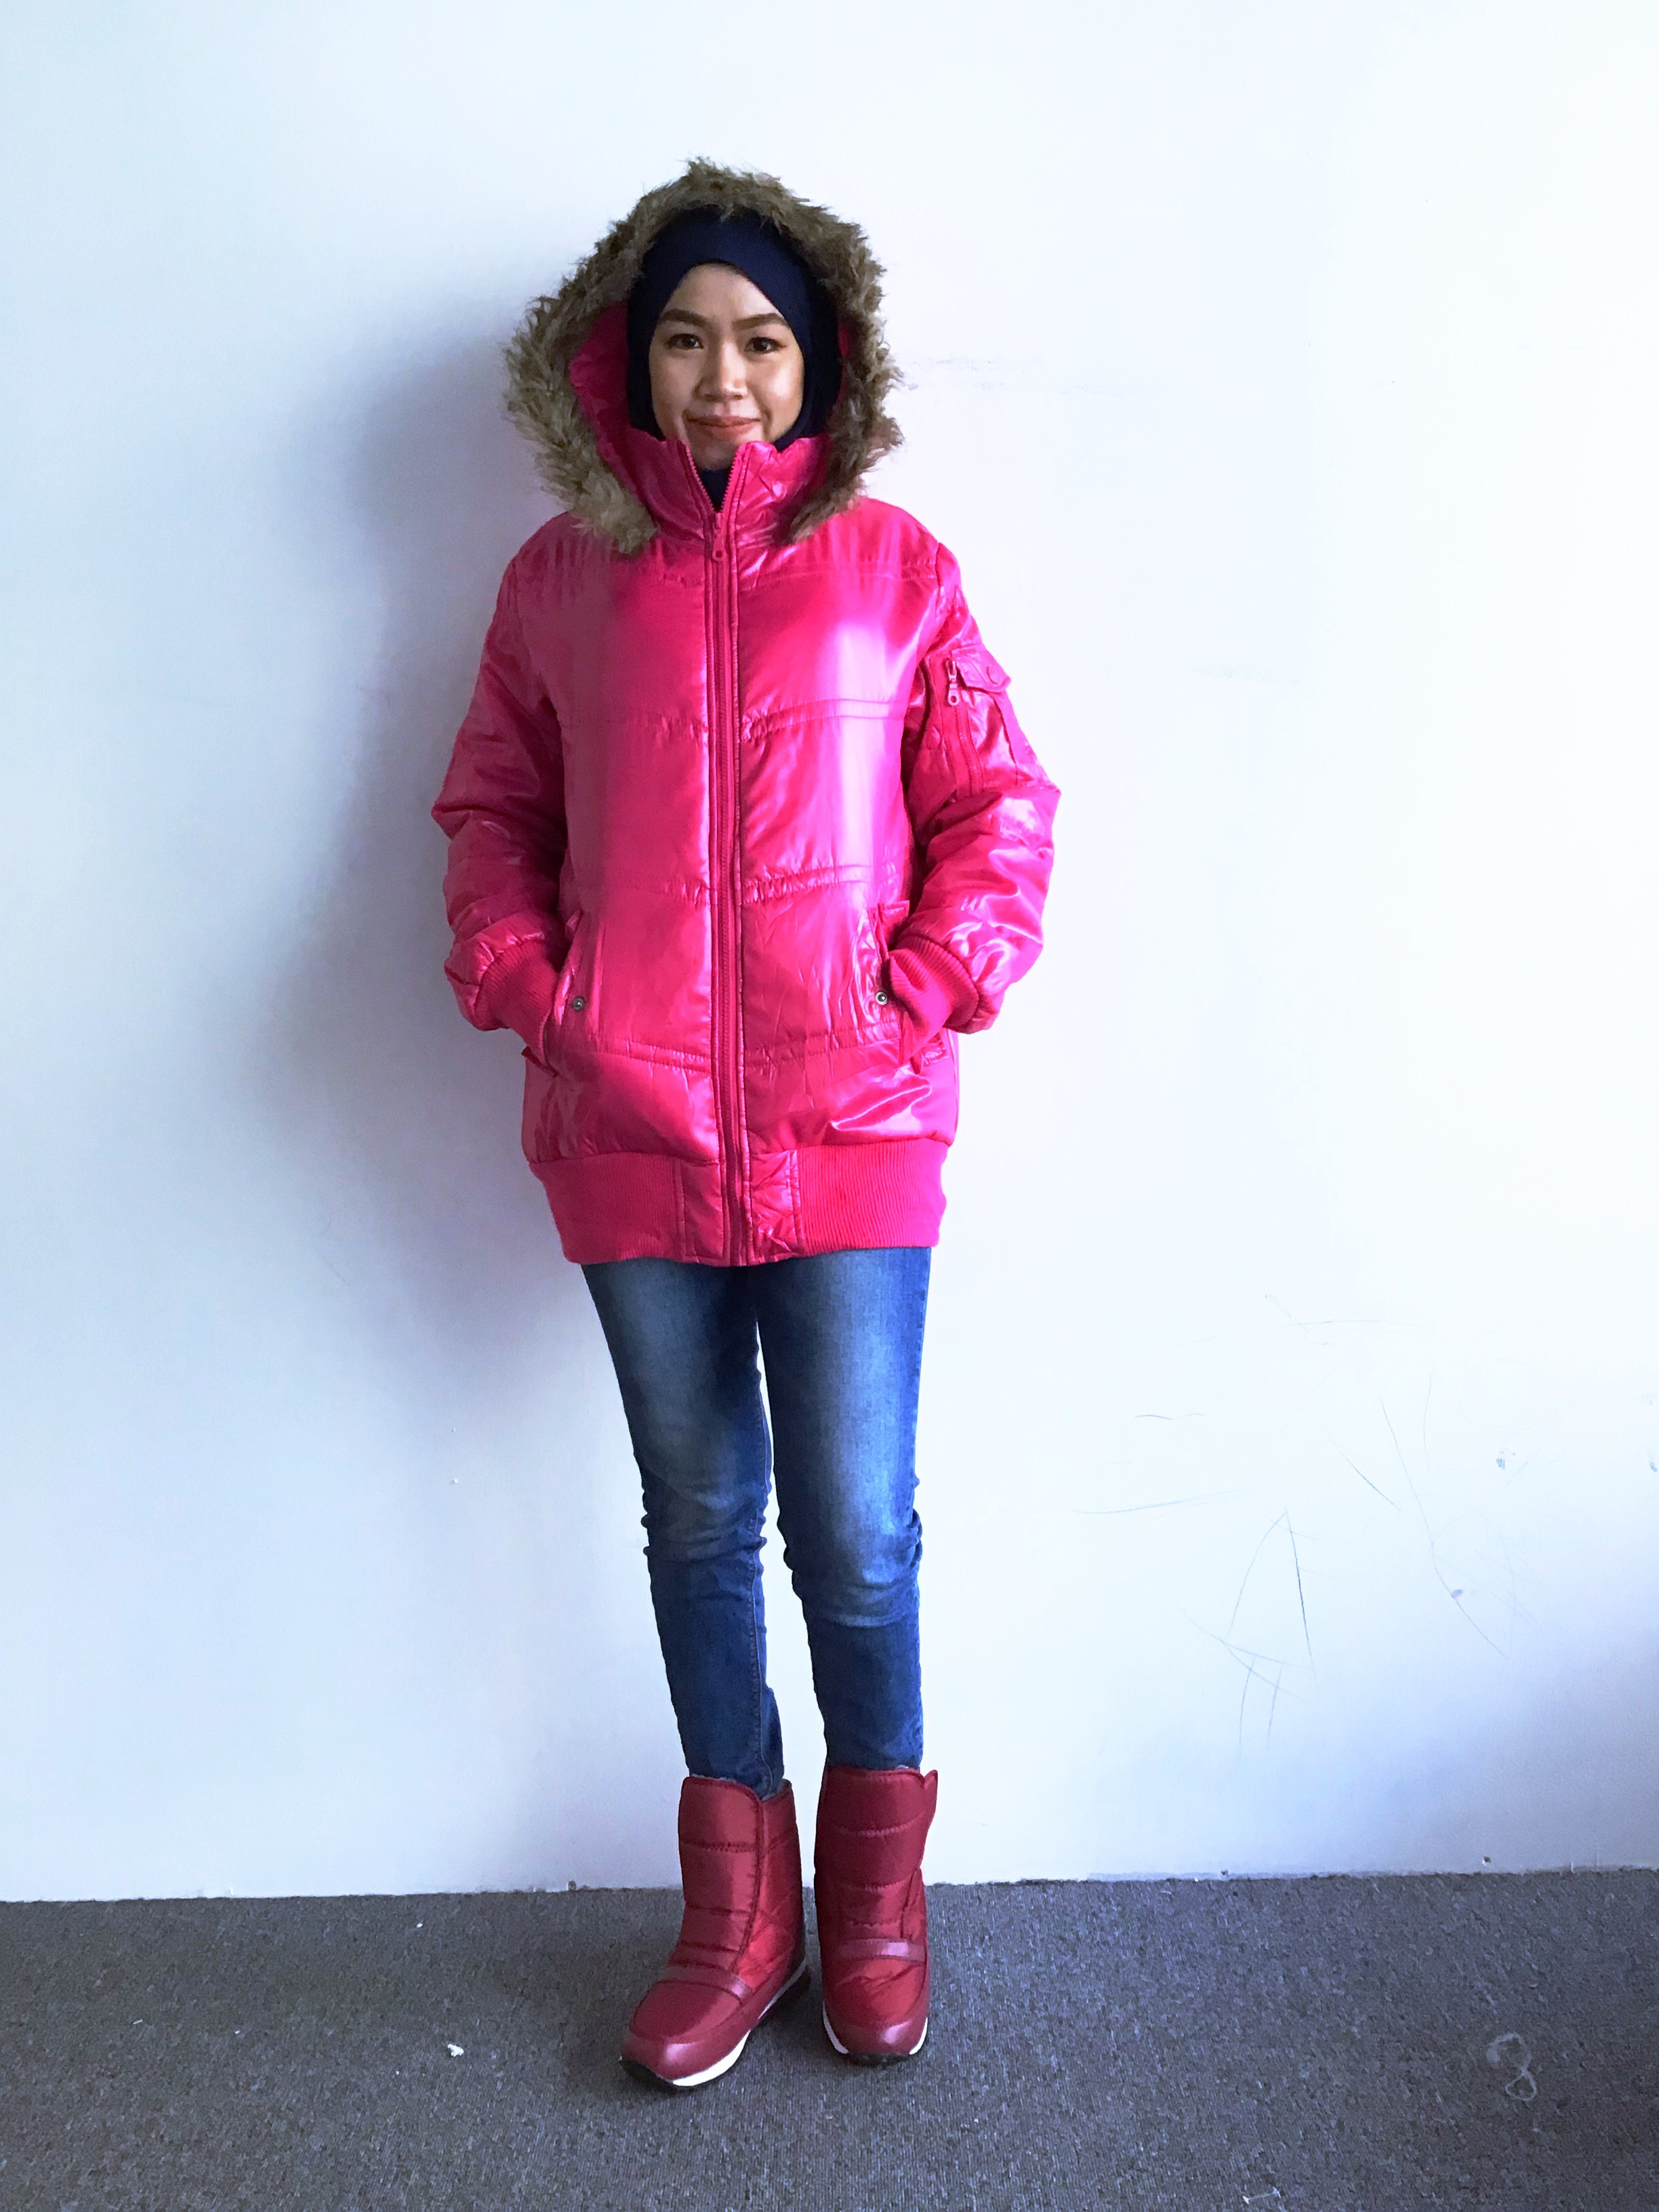 BJ0208 PENDORA WINTER JACKET